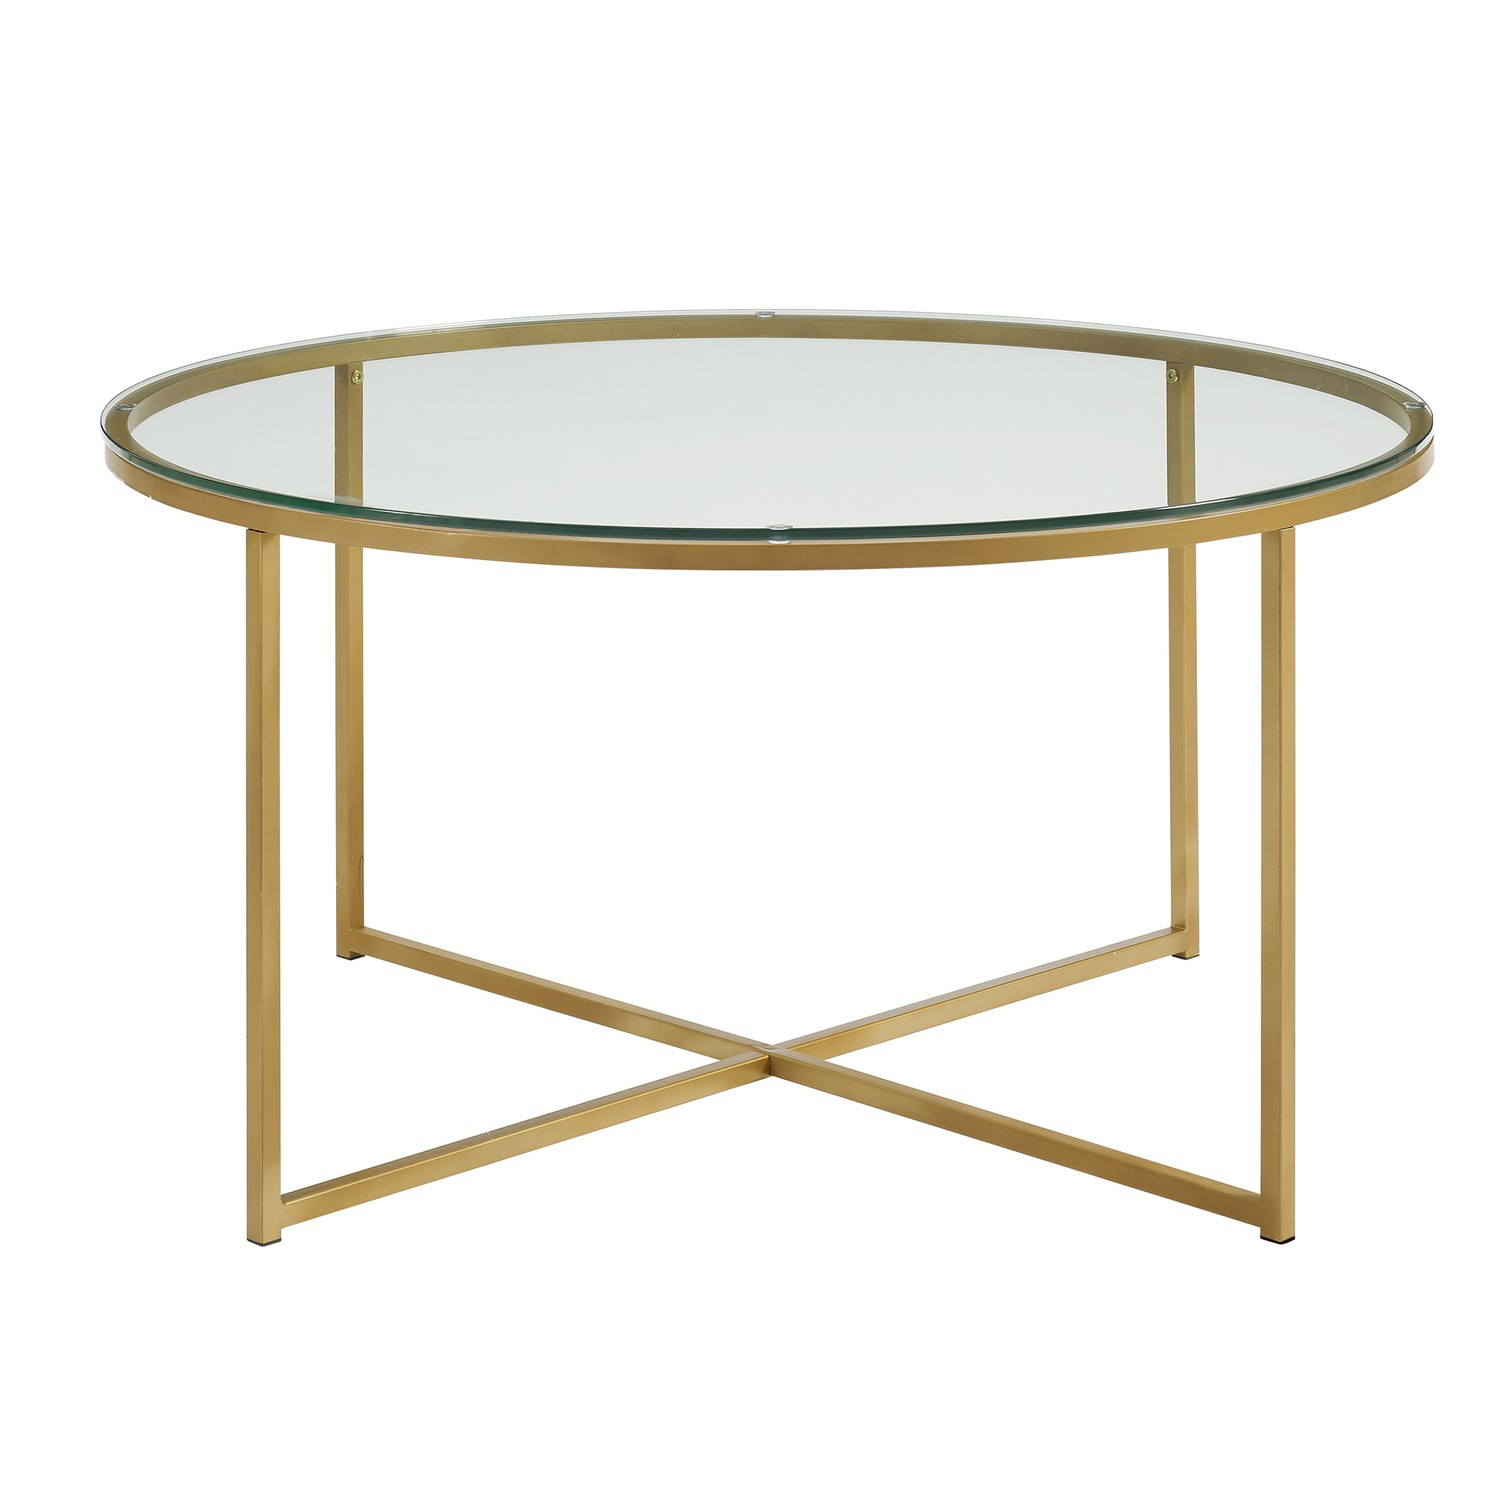 Picture of: Gold Coffee Table With Glass Top Foster Furniture123